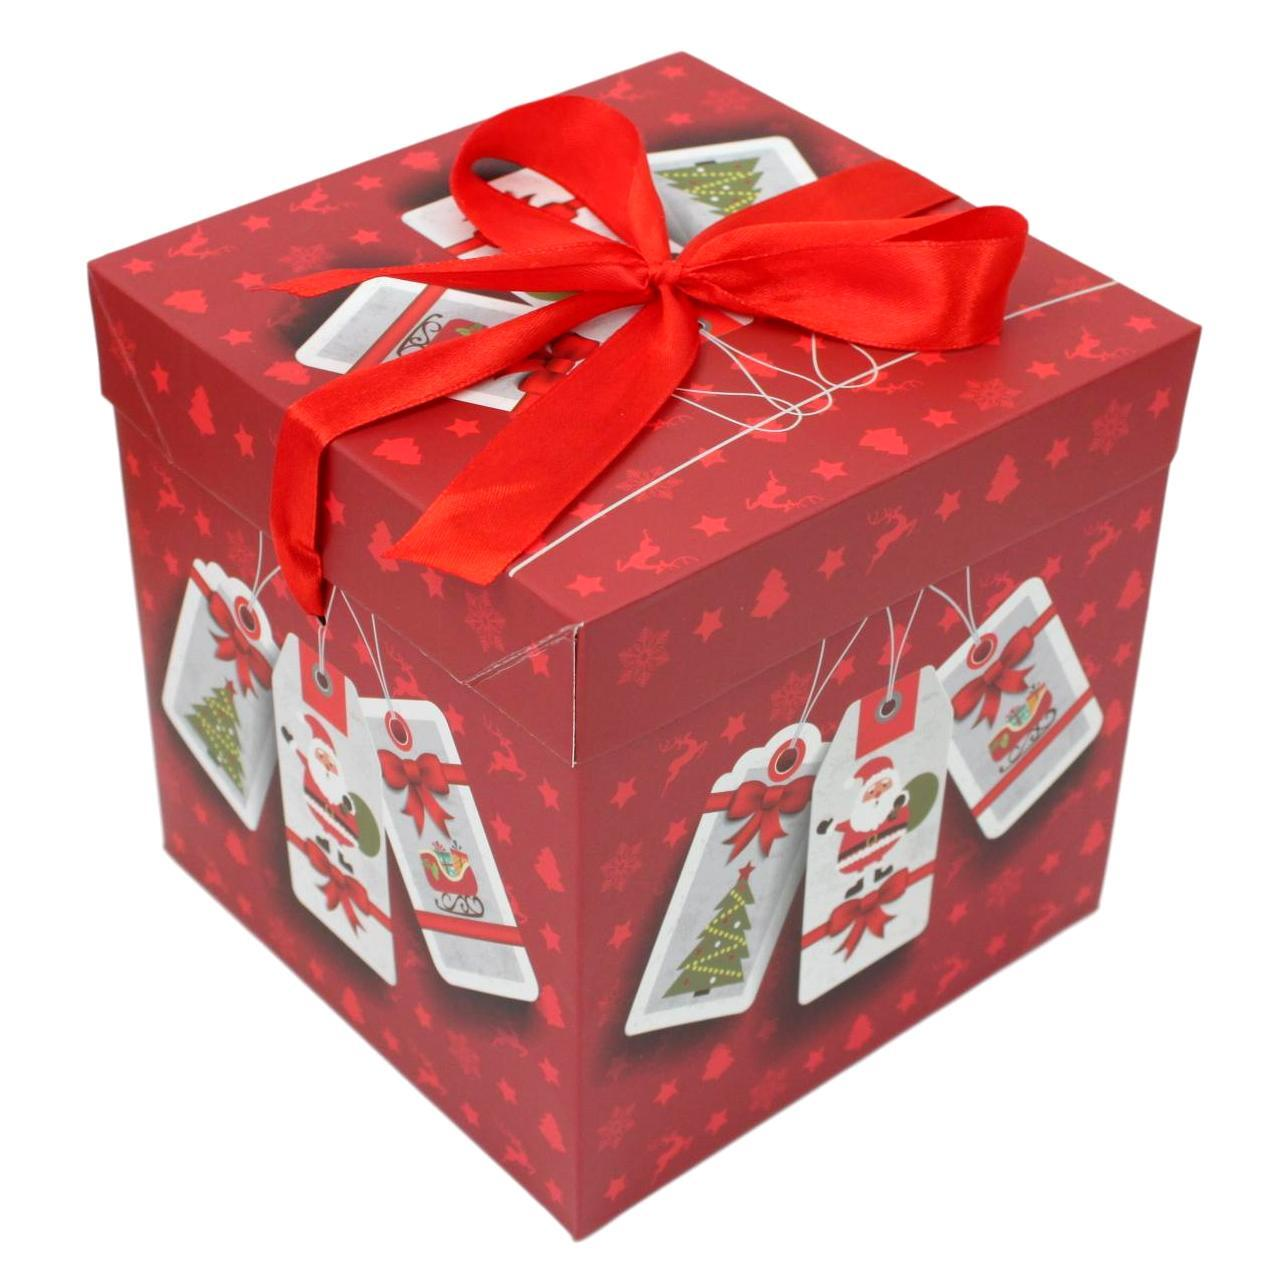 1pc/3pc Christmas Gift Box Large Present Wrapping Box ...